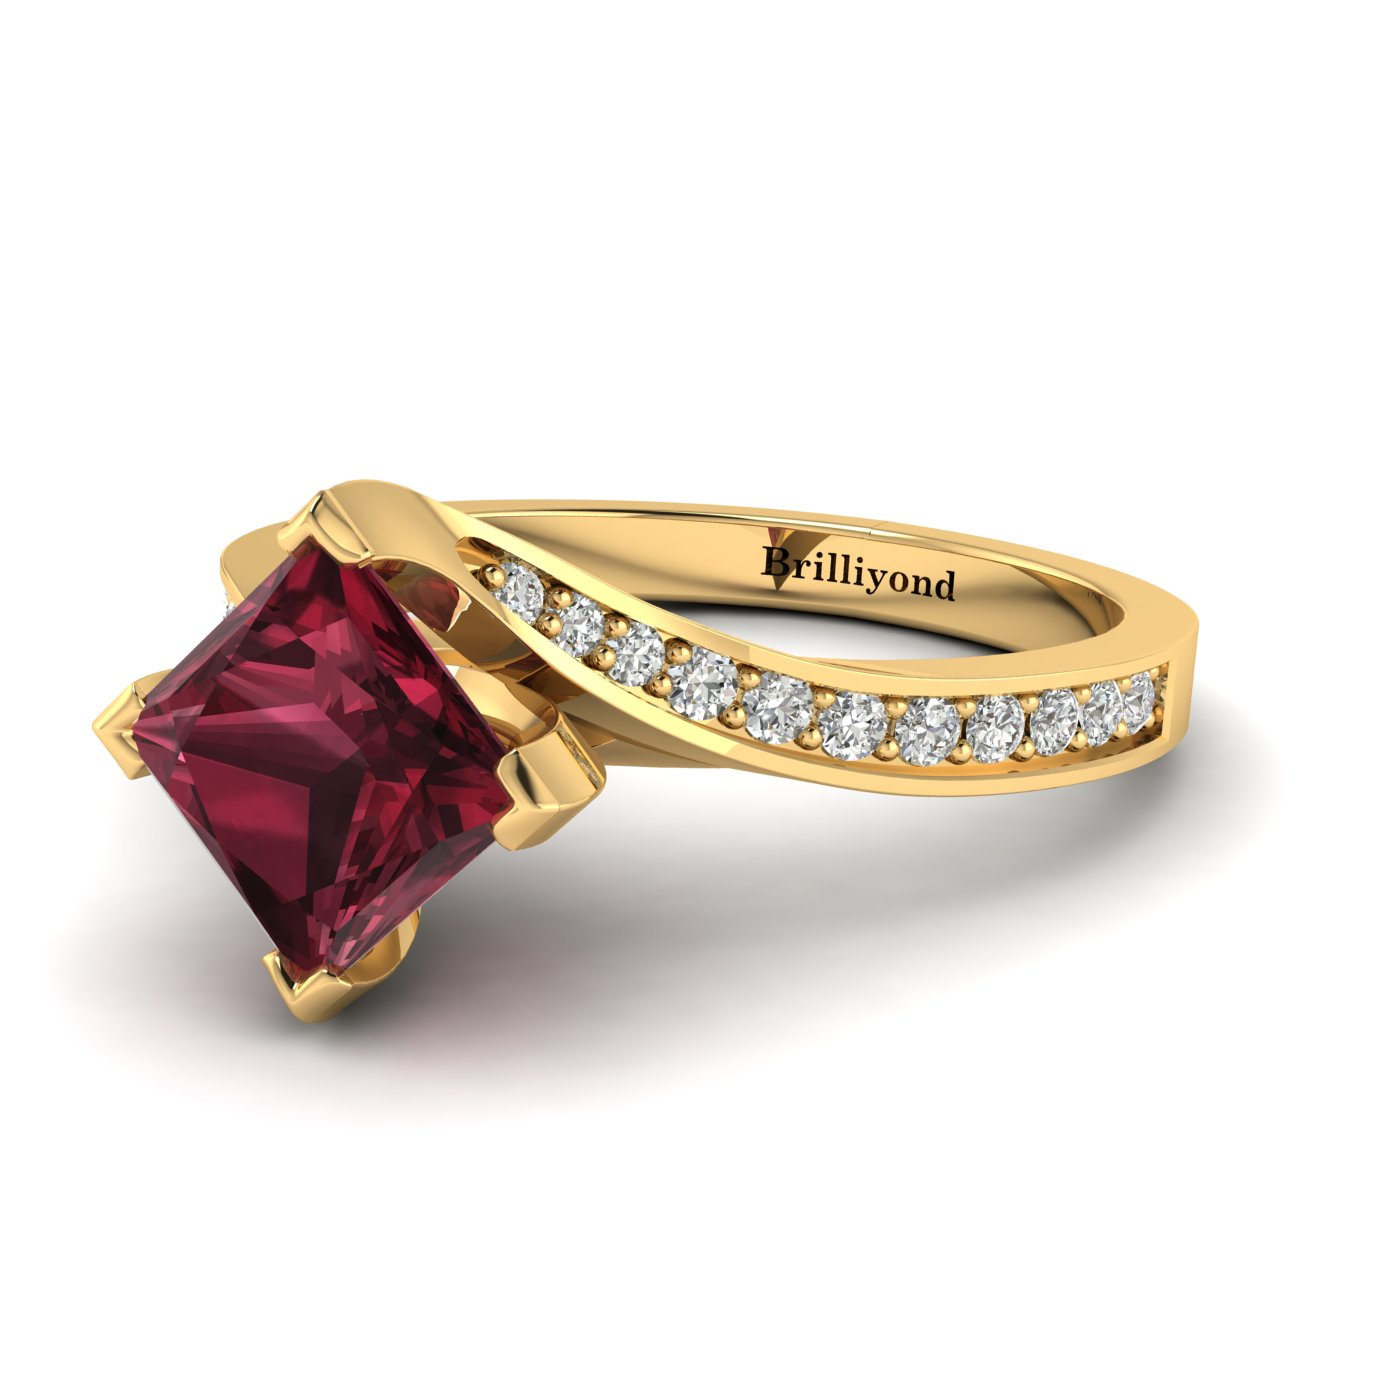 6x6mm Cushion Cut Garnet with CZ Accents on 18k Yellow Gold